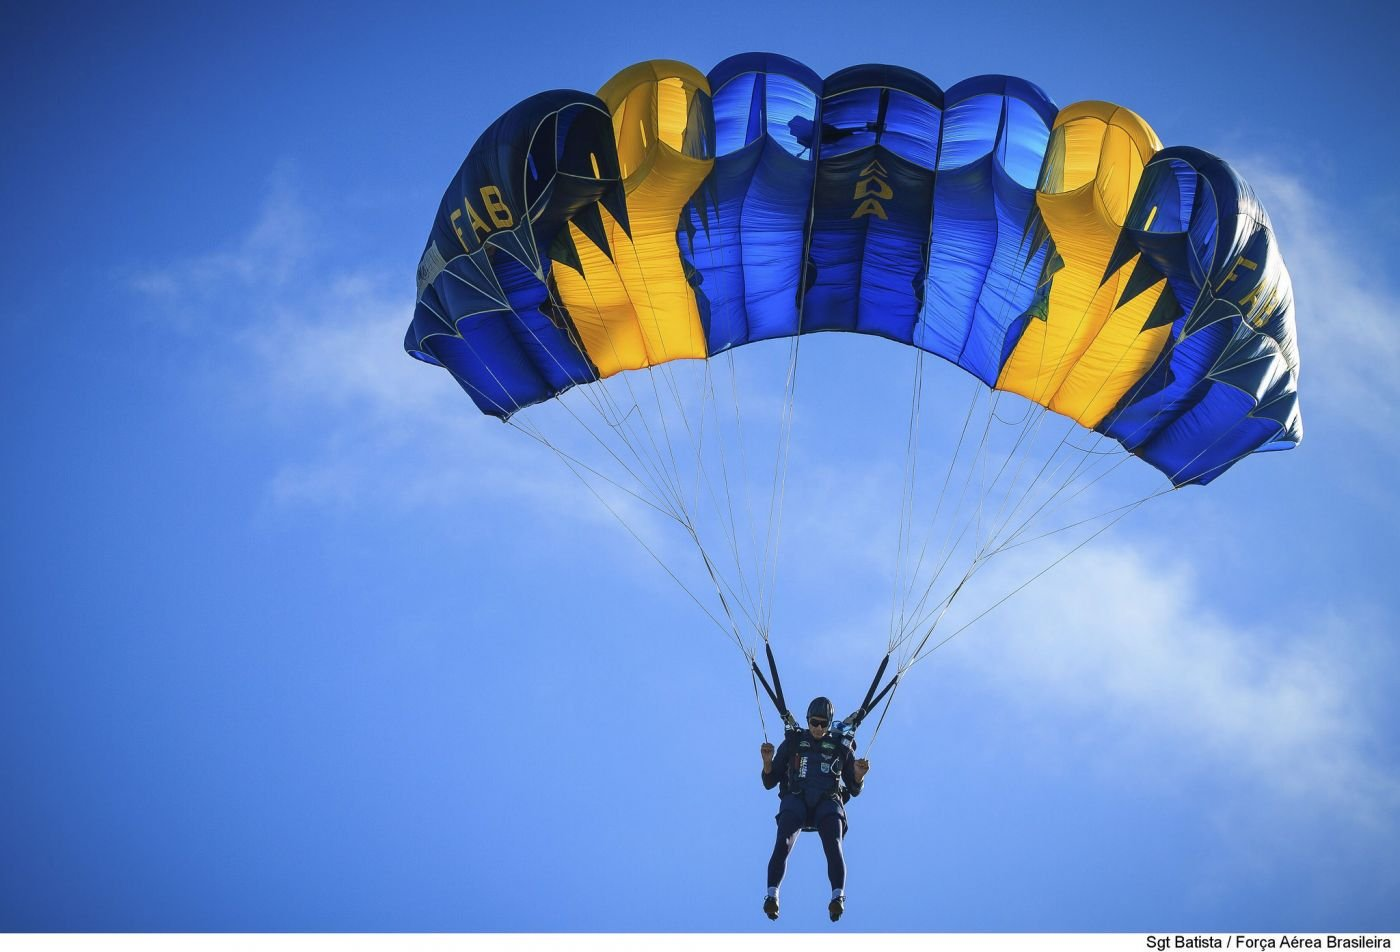 Brazilian Air Force Skydiving Team Stands Out in Latin America